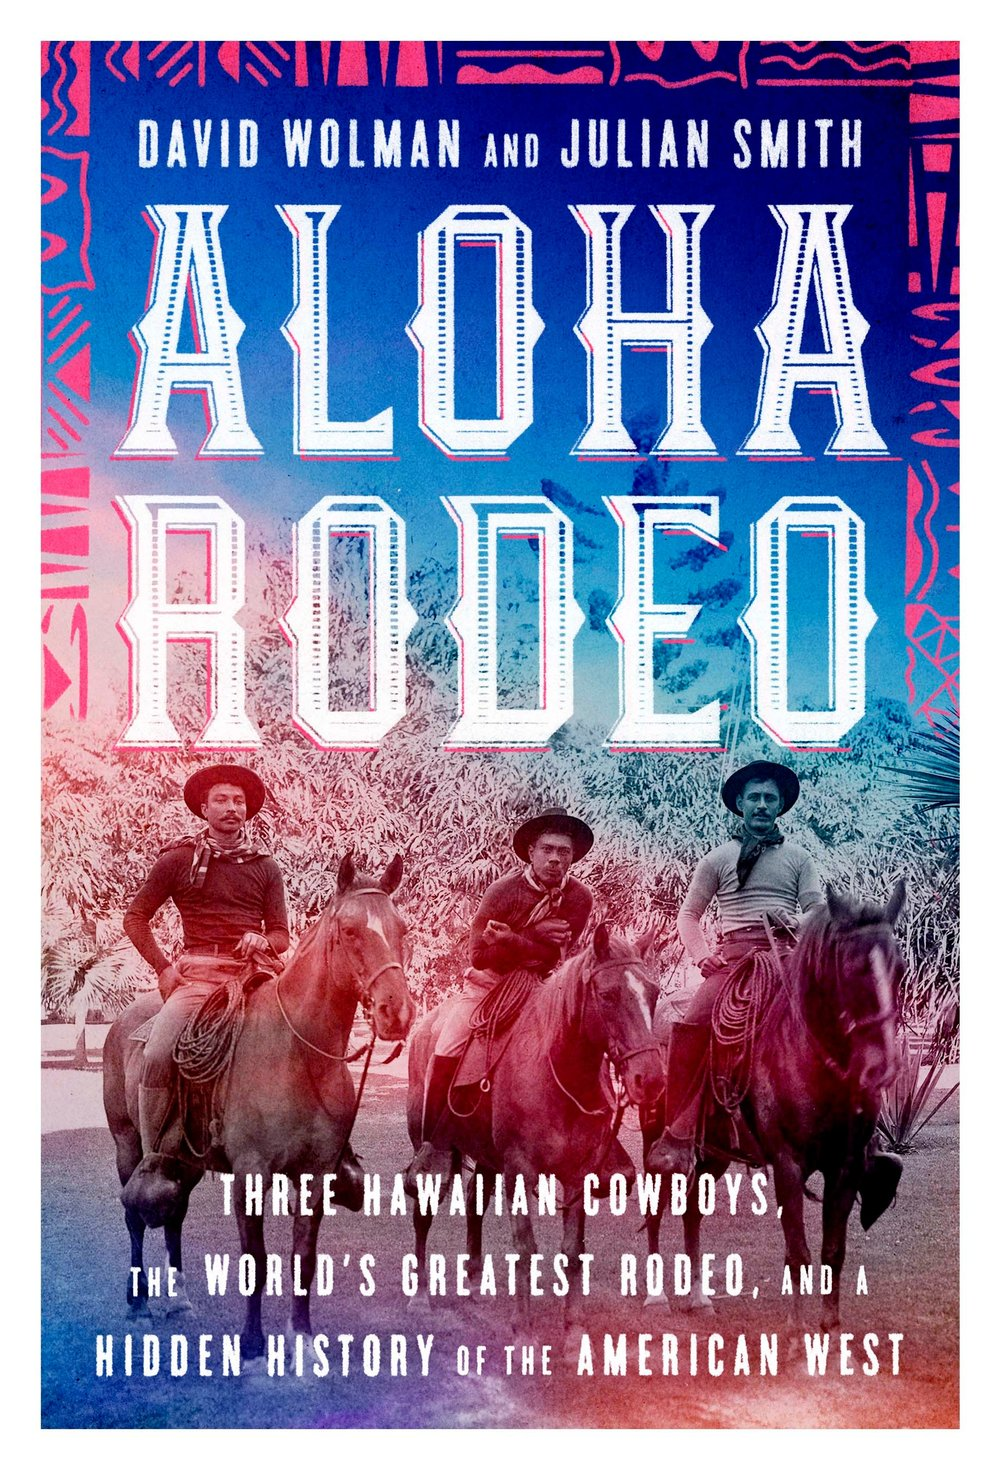 Aloha Rodeo - AVAILABLE MAY 28 FROM HARPERCOLLINSIn August 1908, three unknown riders arrived in Cheyenne, Wyoming, their hats adorned with wildflowers, to compete in the world's greatest rodeo. Steer-roping virtuoso Ikua Purdy and his cousins Jack Low and Archie Ka'au'a had travelled 3,000 miles from Hawaii, of all places, to test themselves against the toughest riders in the West.Dismissed by whites, who considered themselves the only true cowboys, the native Hawaiians would astonish the country, returning home champions—and American legends. An unforgettable human drama set against the rough-knuckled frontier, Aloha Rodeo unspools the fascinating and little-known true story of the Hawaiian cowboys, or paniolo, whose 1908 adventure upended the conventional history of the American West.